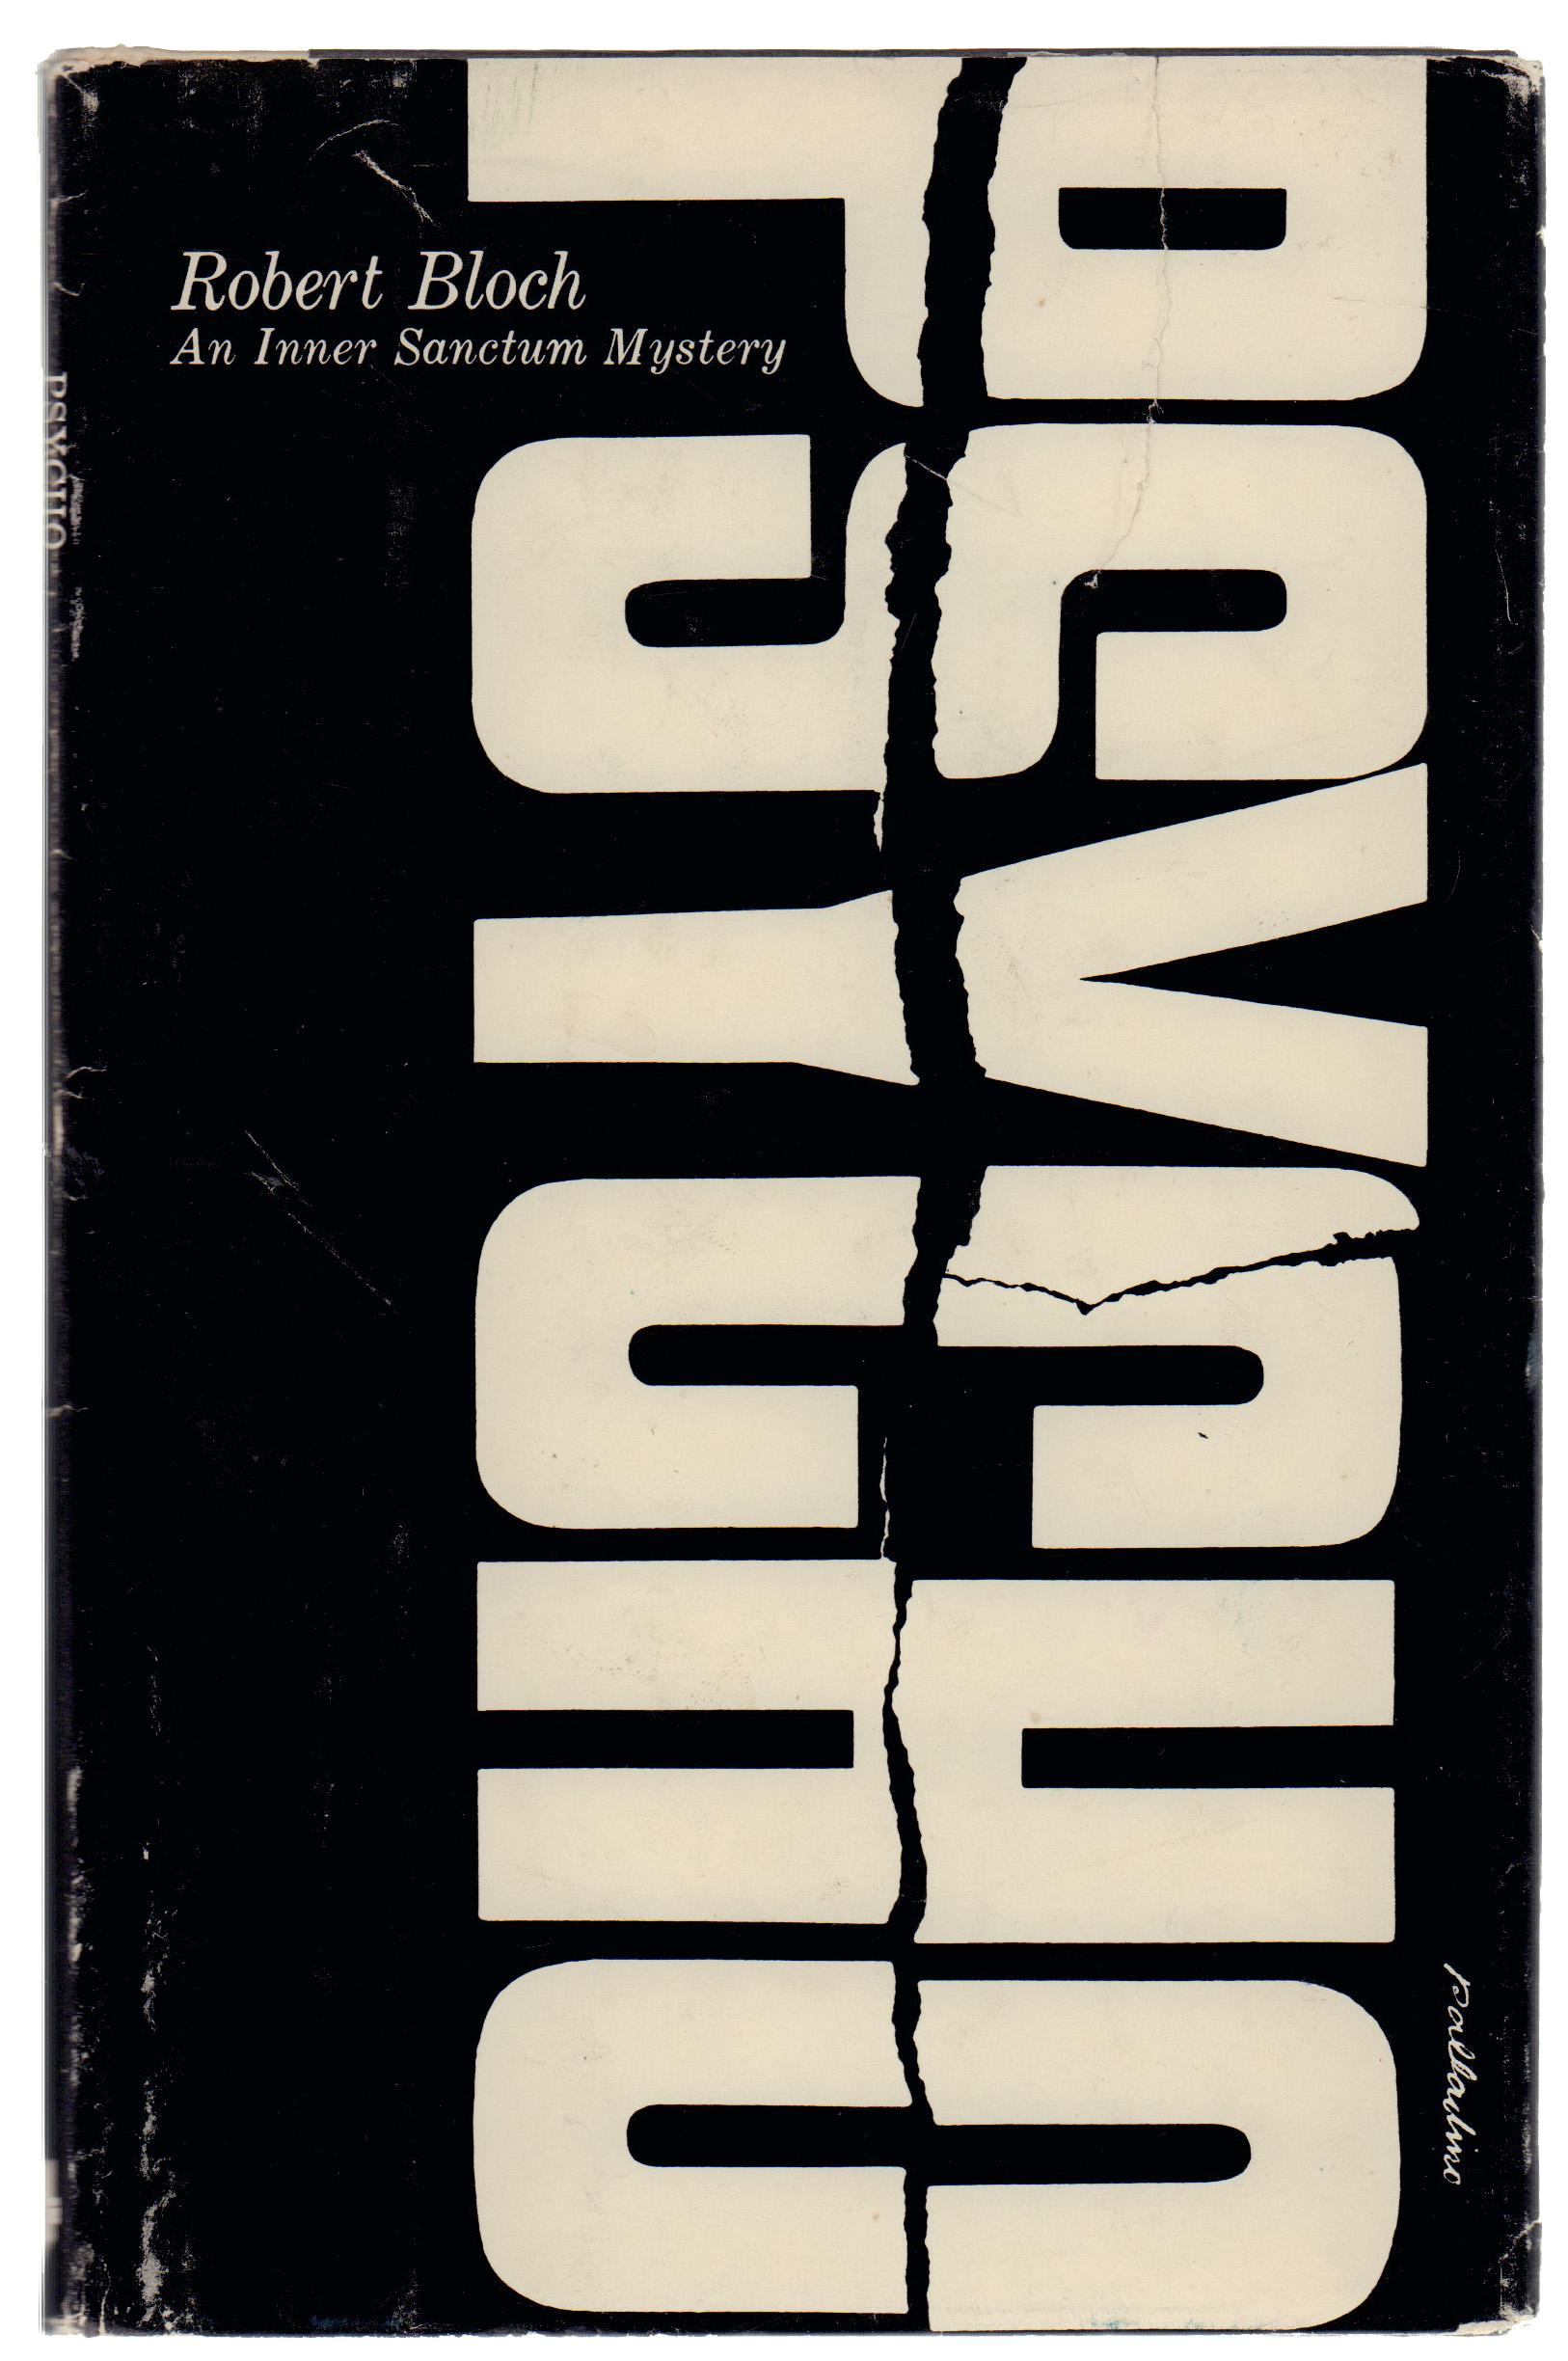 Psycho By Robert Bloch First Edition Hardcover Book Chairish